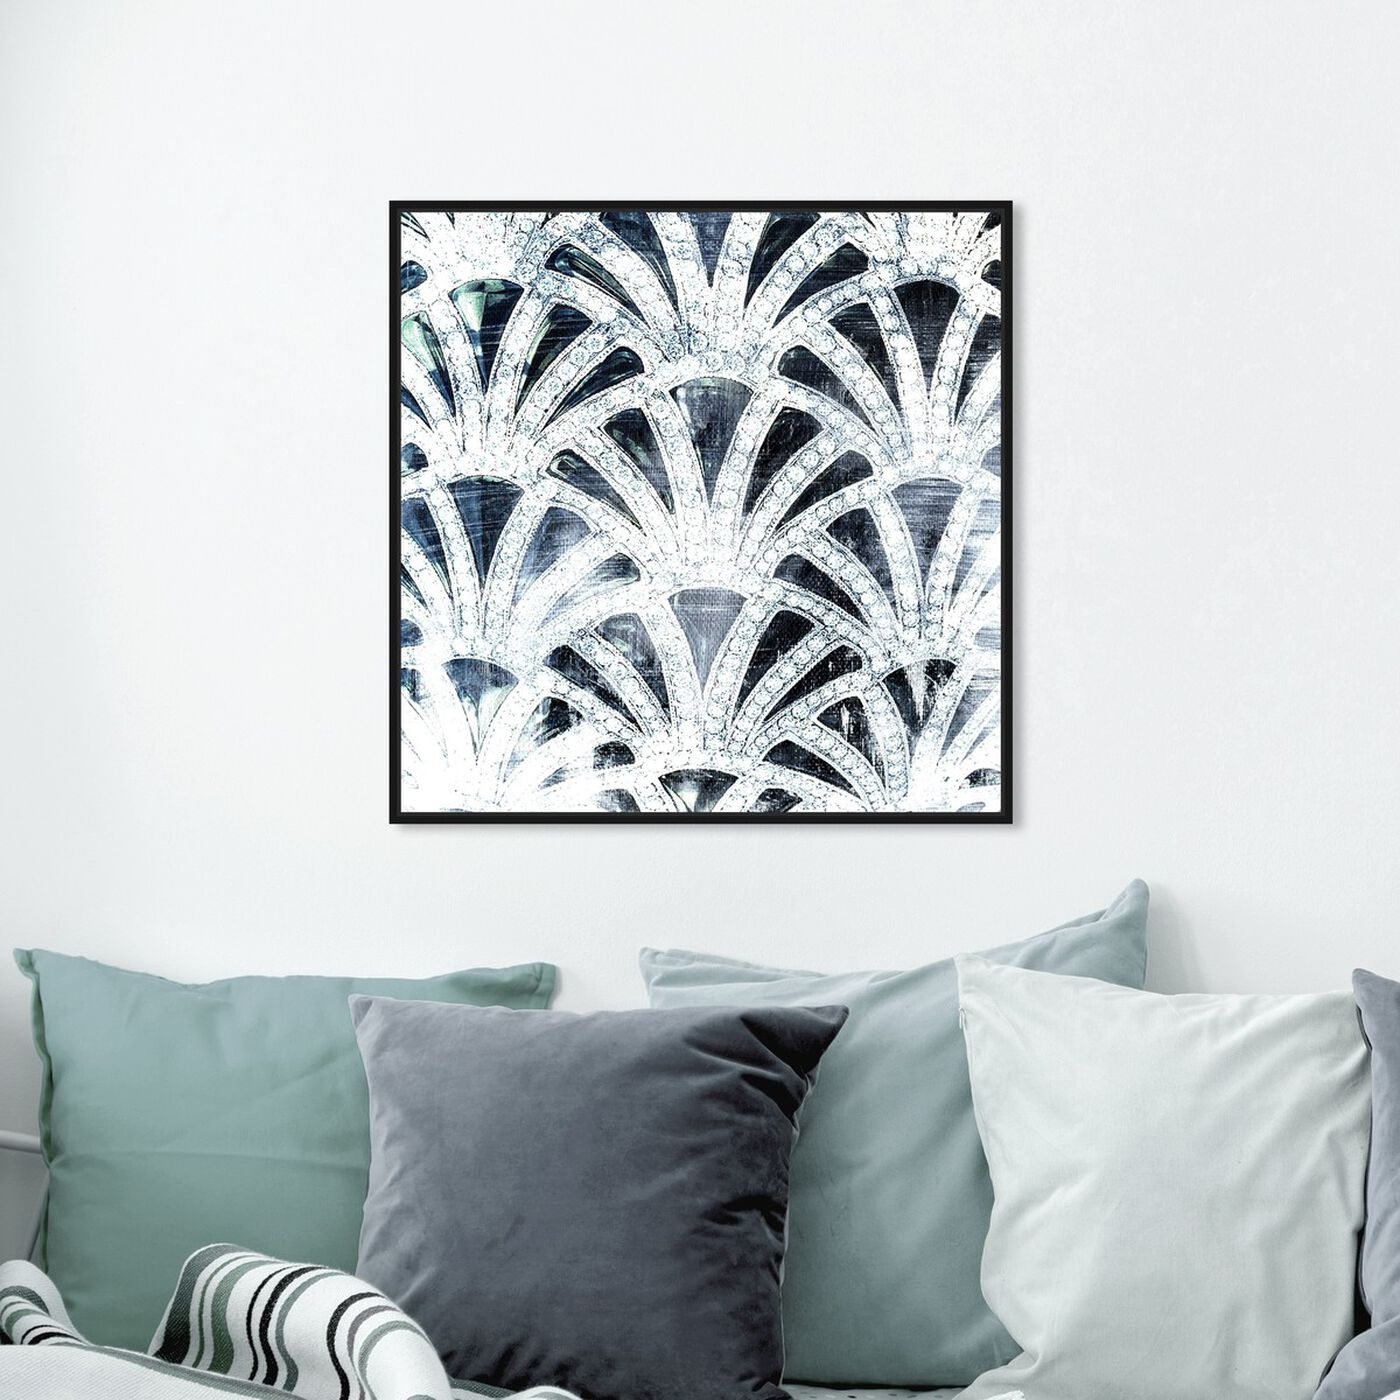 Hanging view of Diamonds Deco featuring abstract and patterns art.